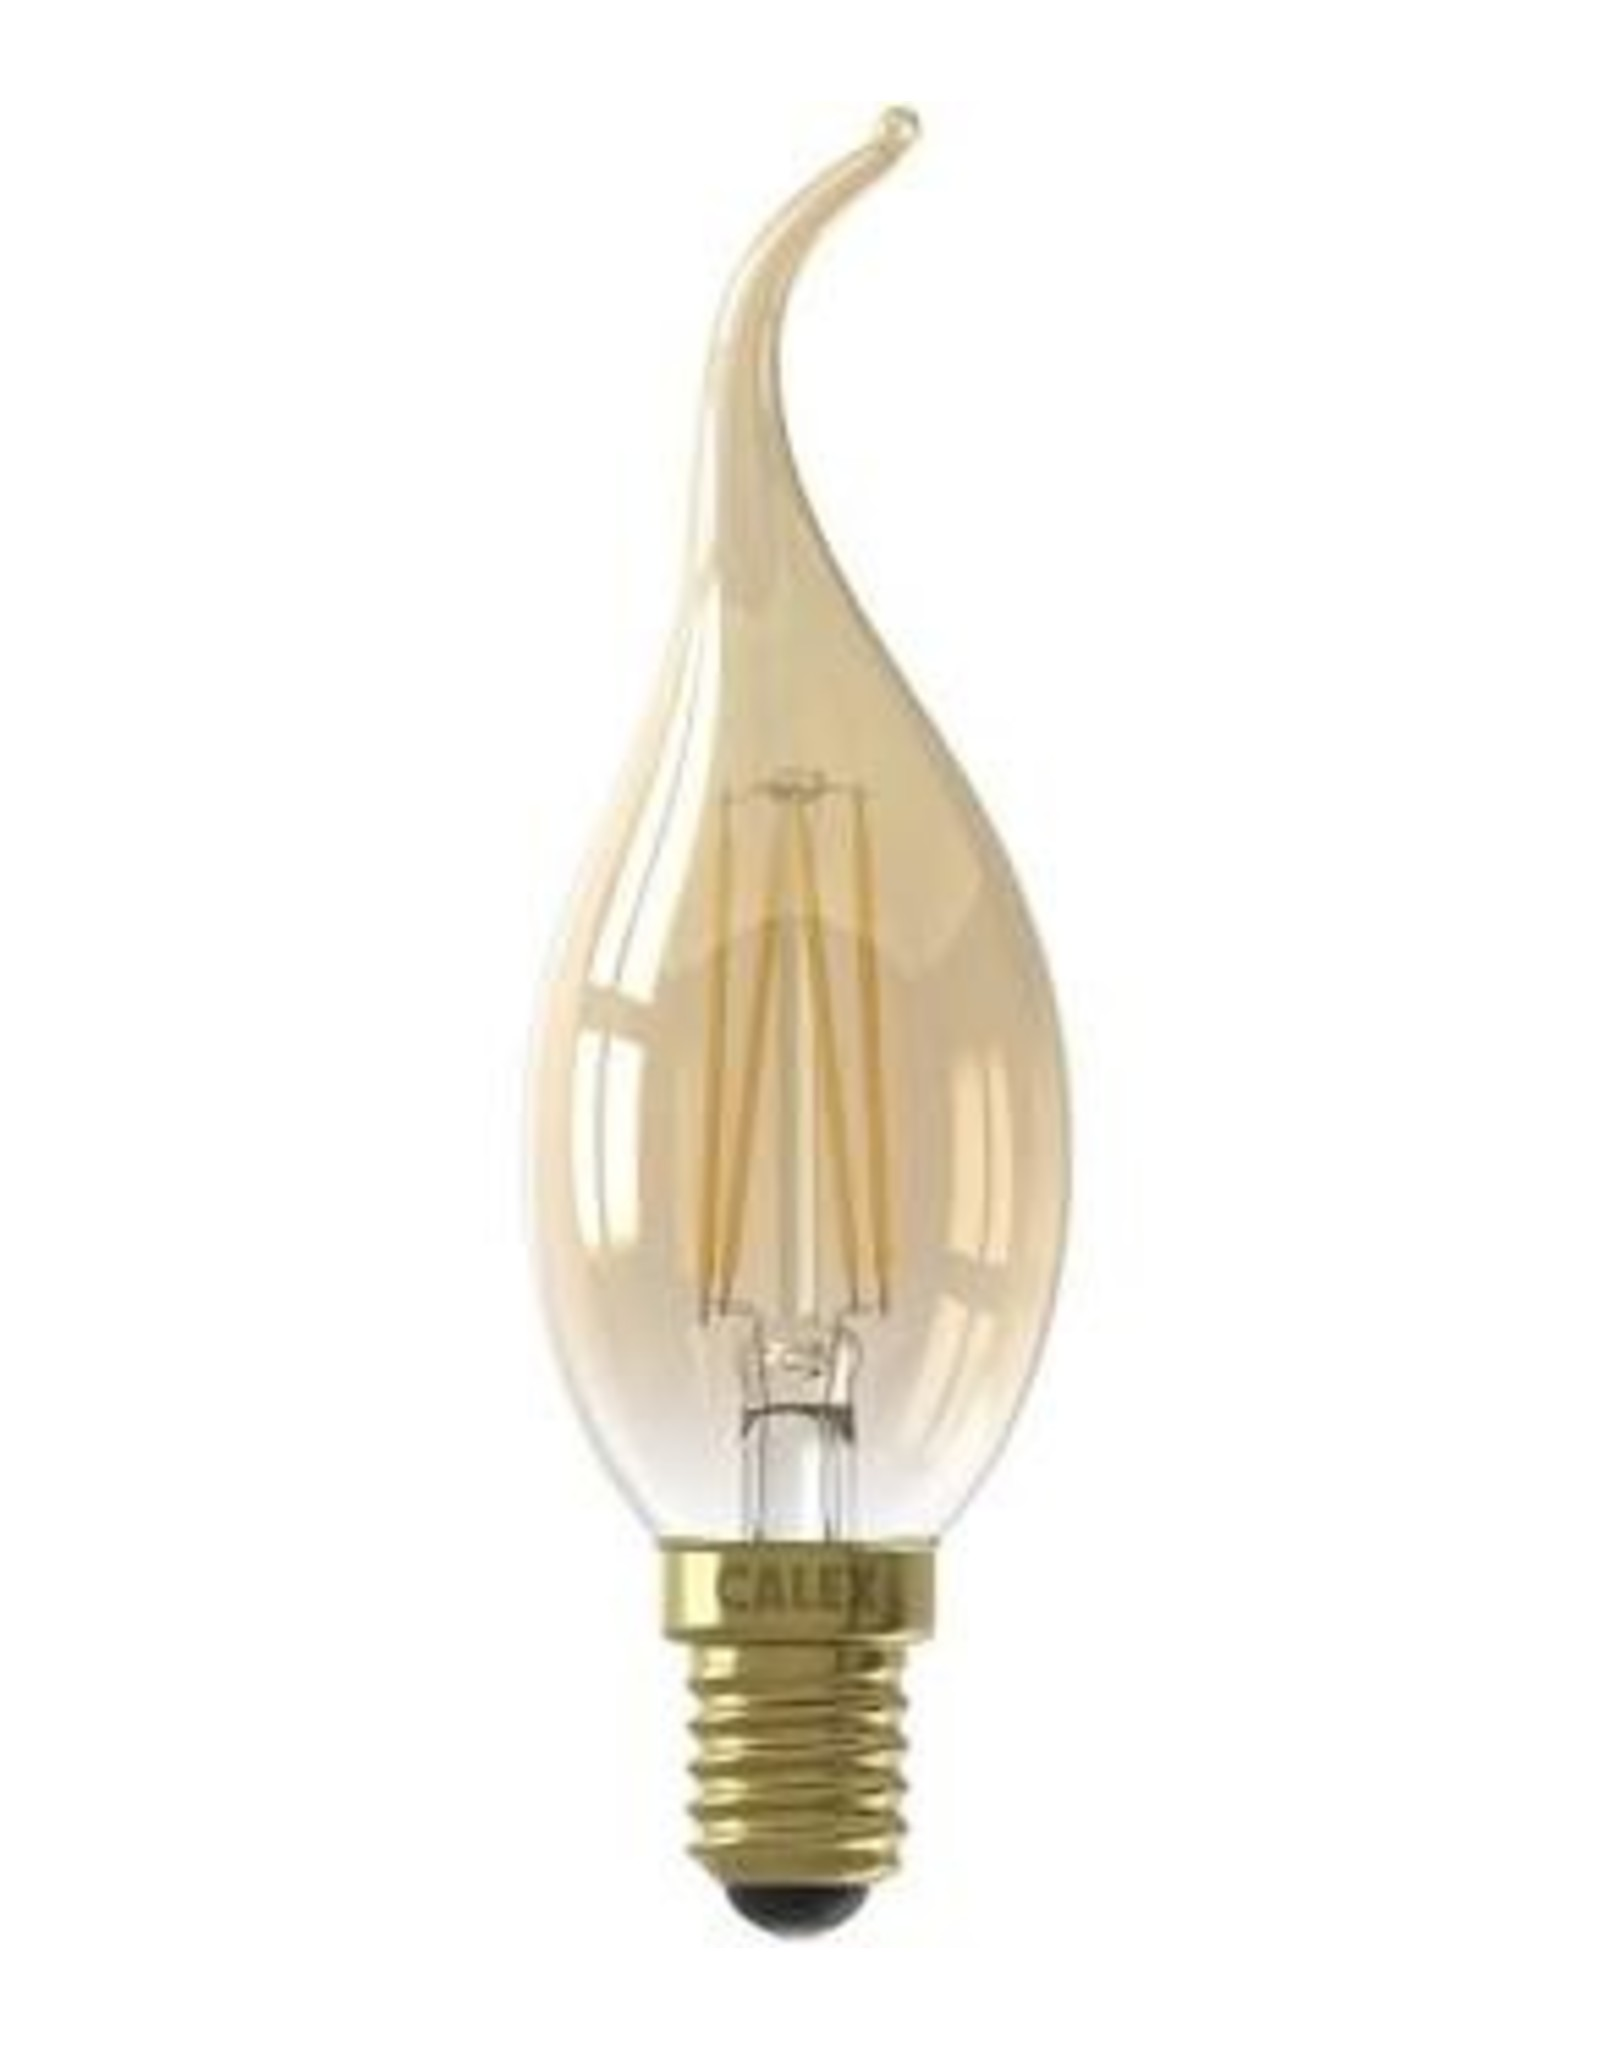 Calex LED Full Glass Filament Tip-Candle-lamp 220-240V 3,5W 200lm E14 BXS35, Gold 2100K CRI80 Dimmable, energy label A+